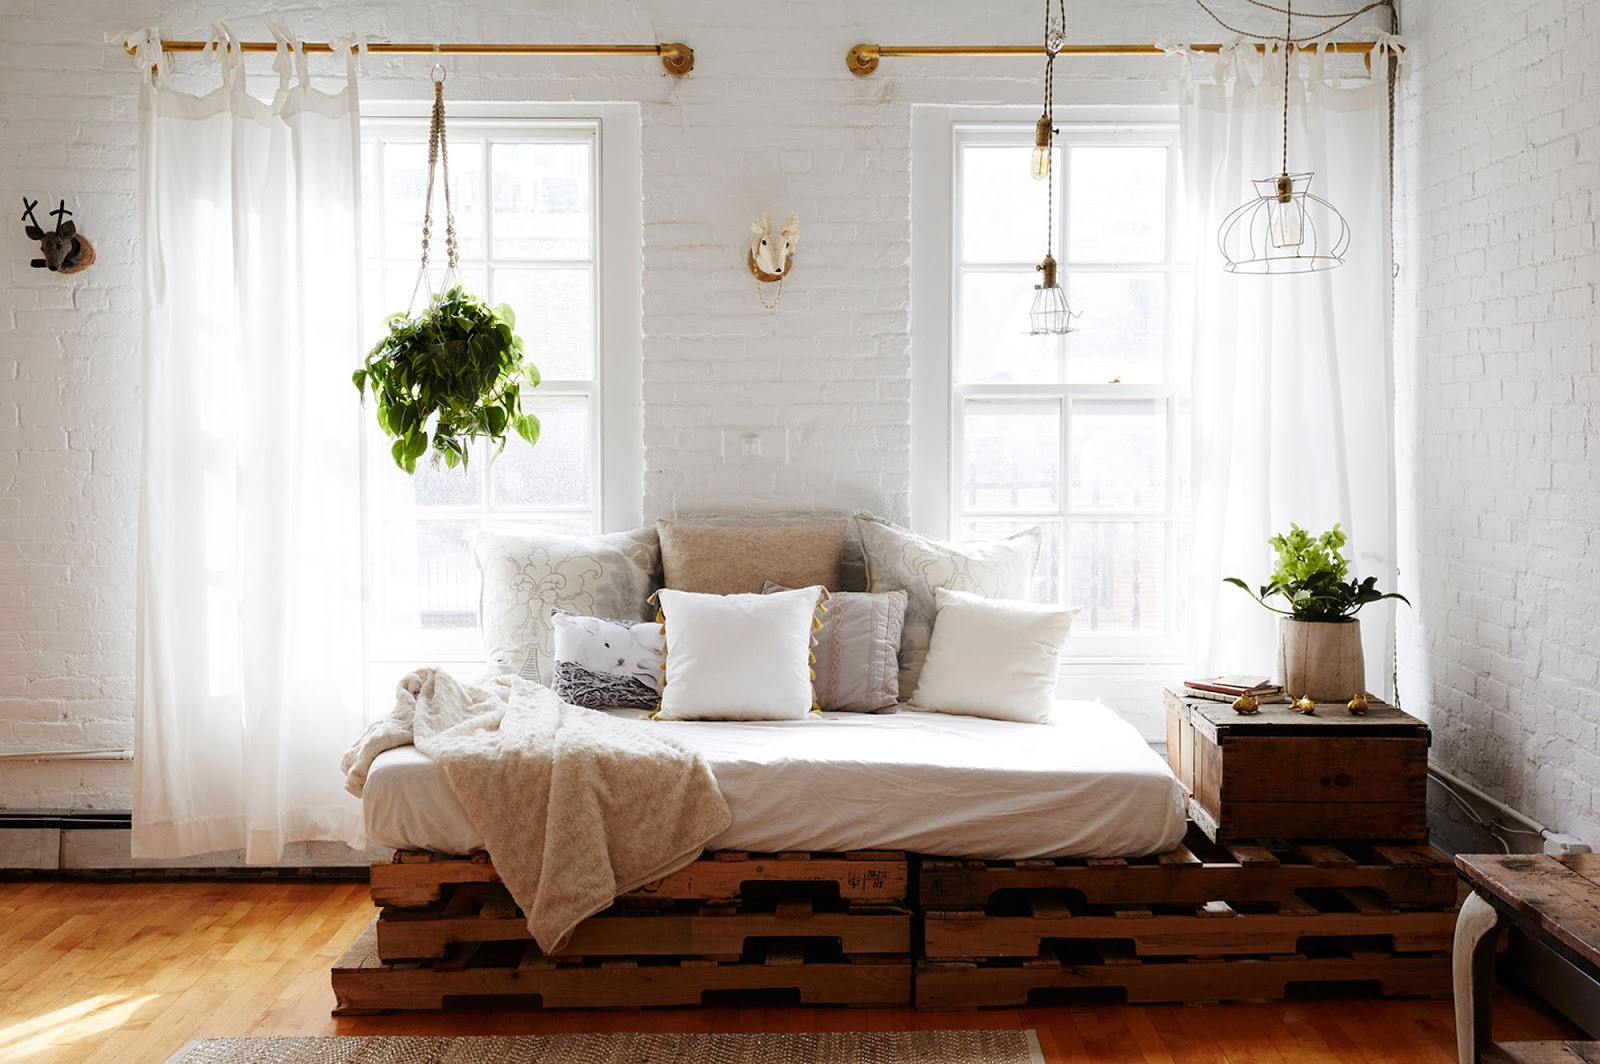 Ikea Nice France Vintage Style Loft In Tribeca, New York